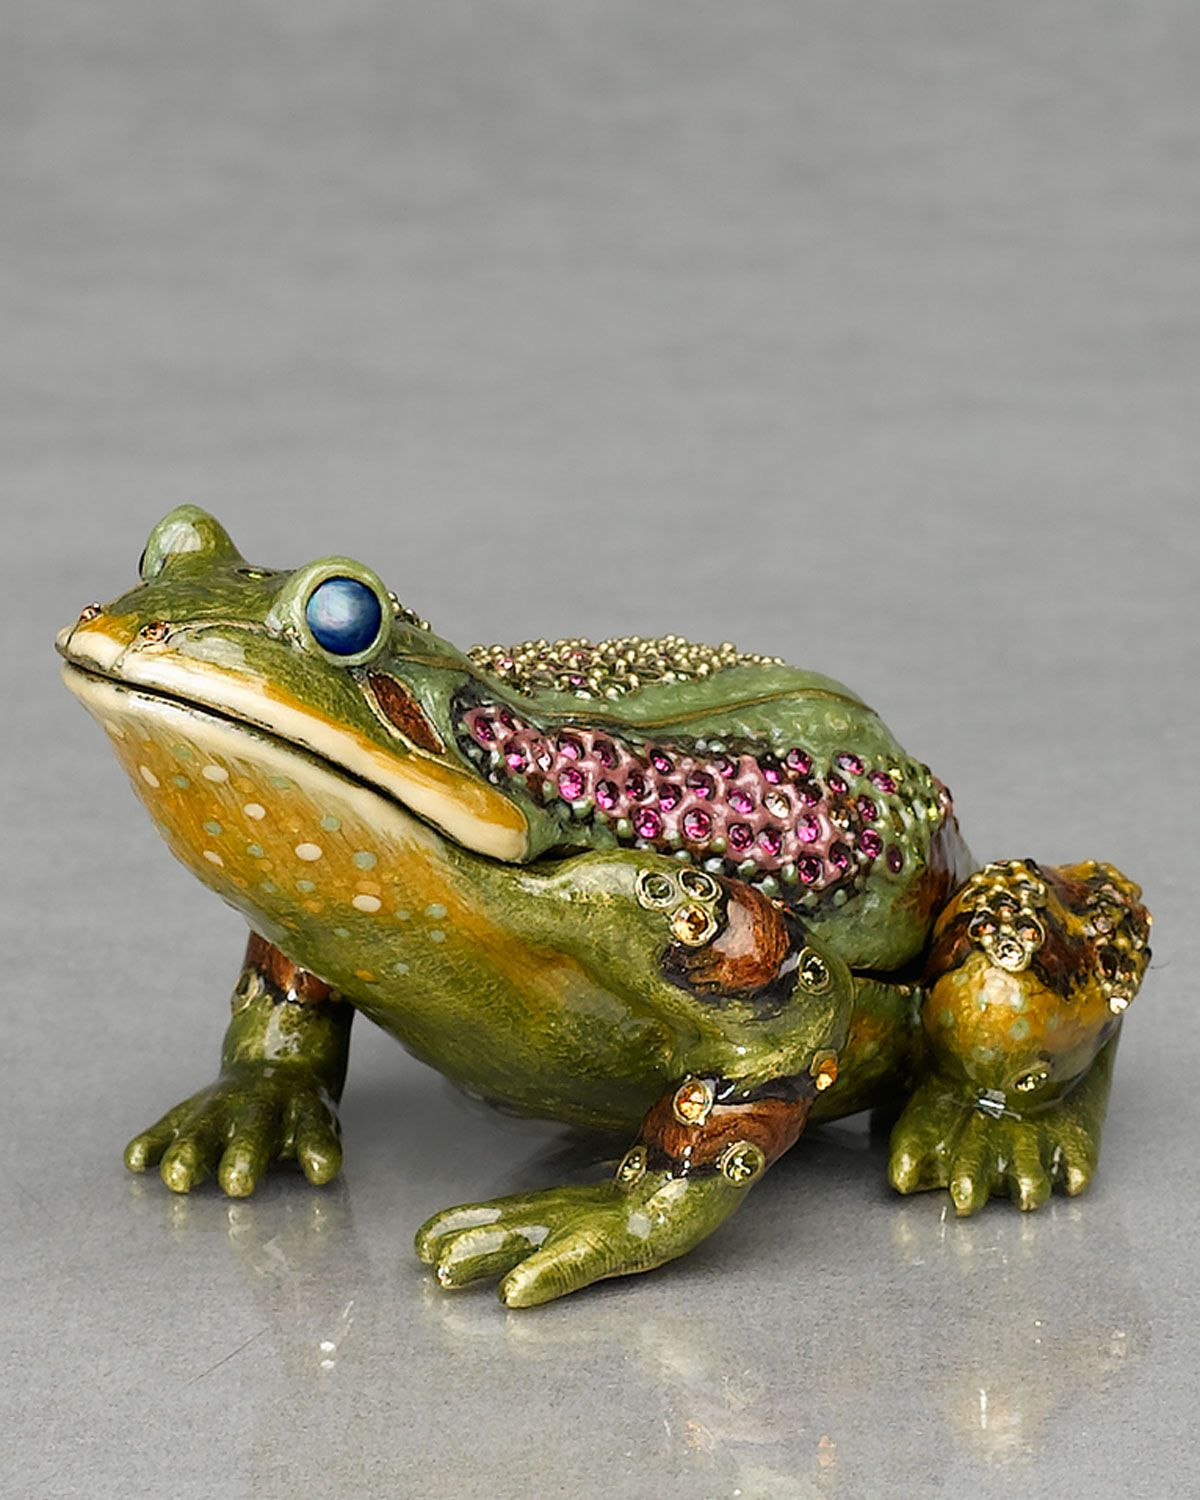 http://archinetix.com/jay-strongwater-prince-frog-paperweight-clock-p-1821.html